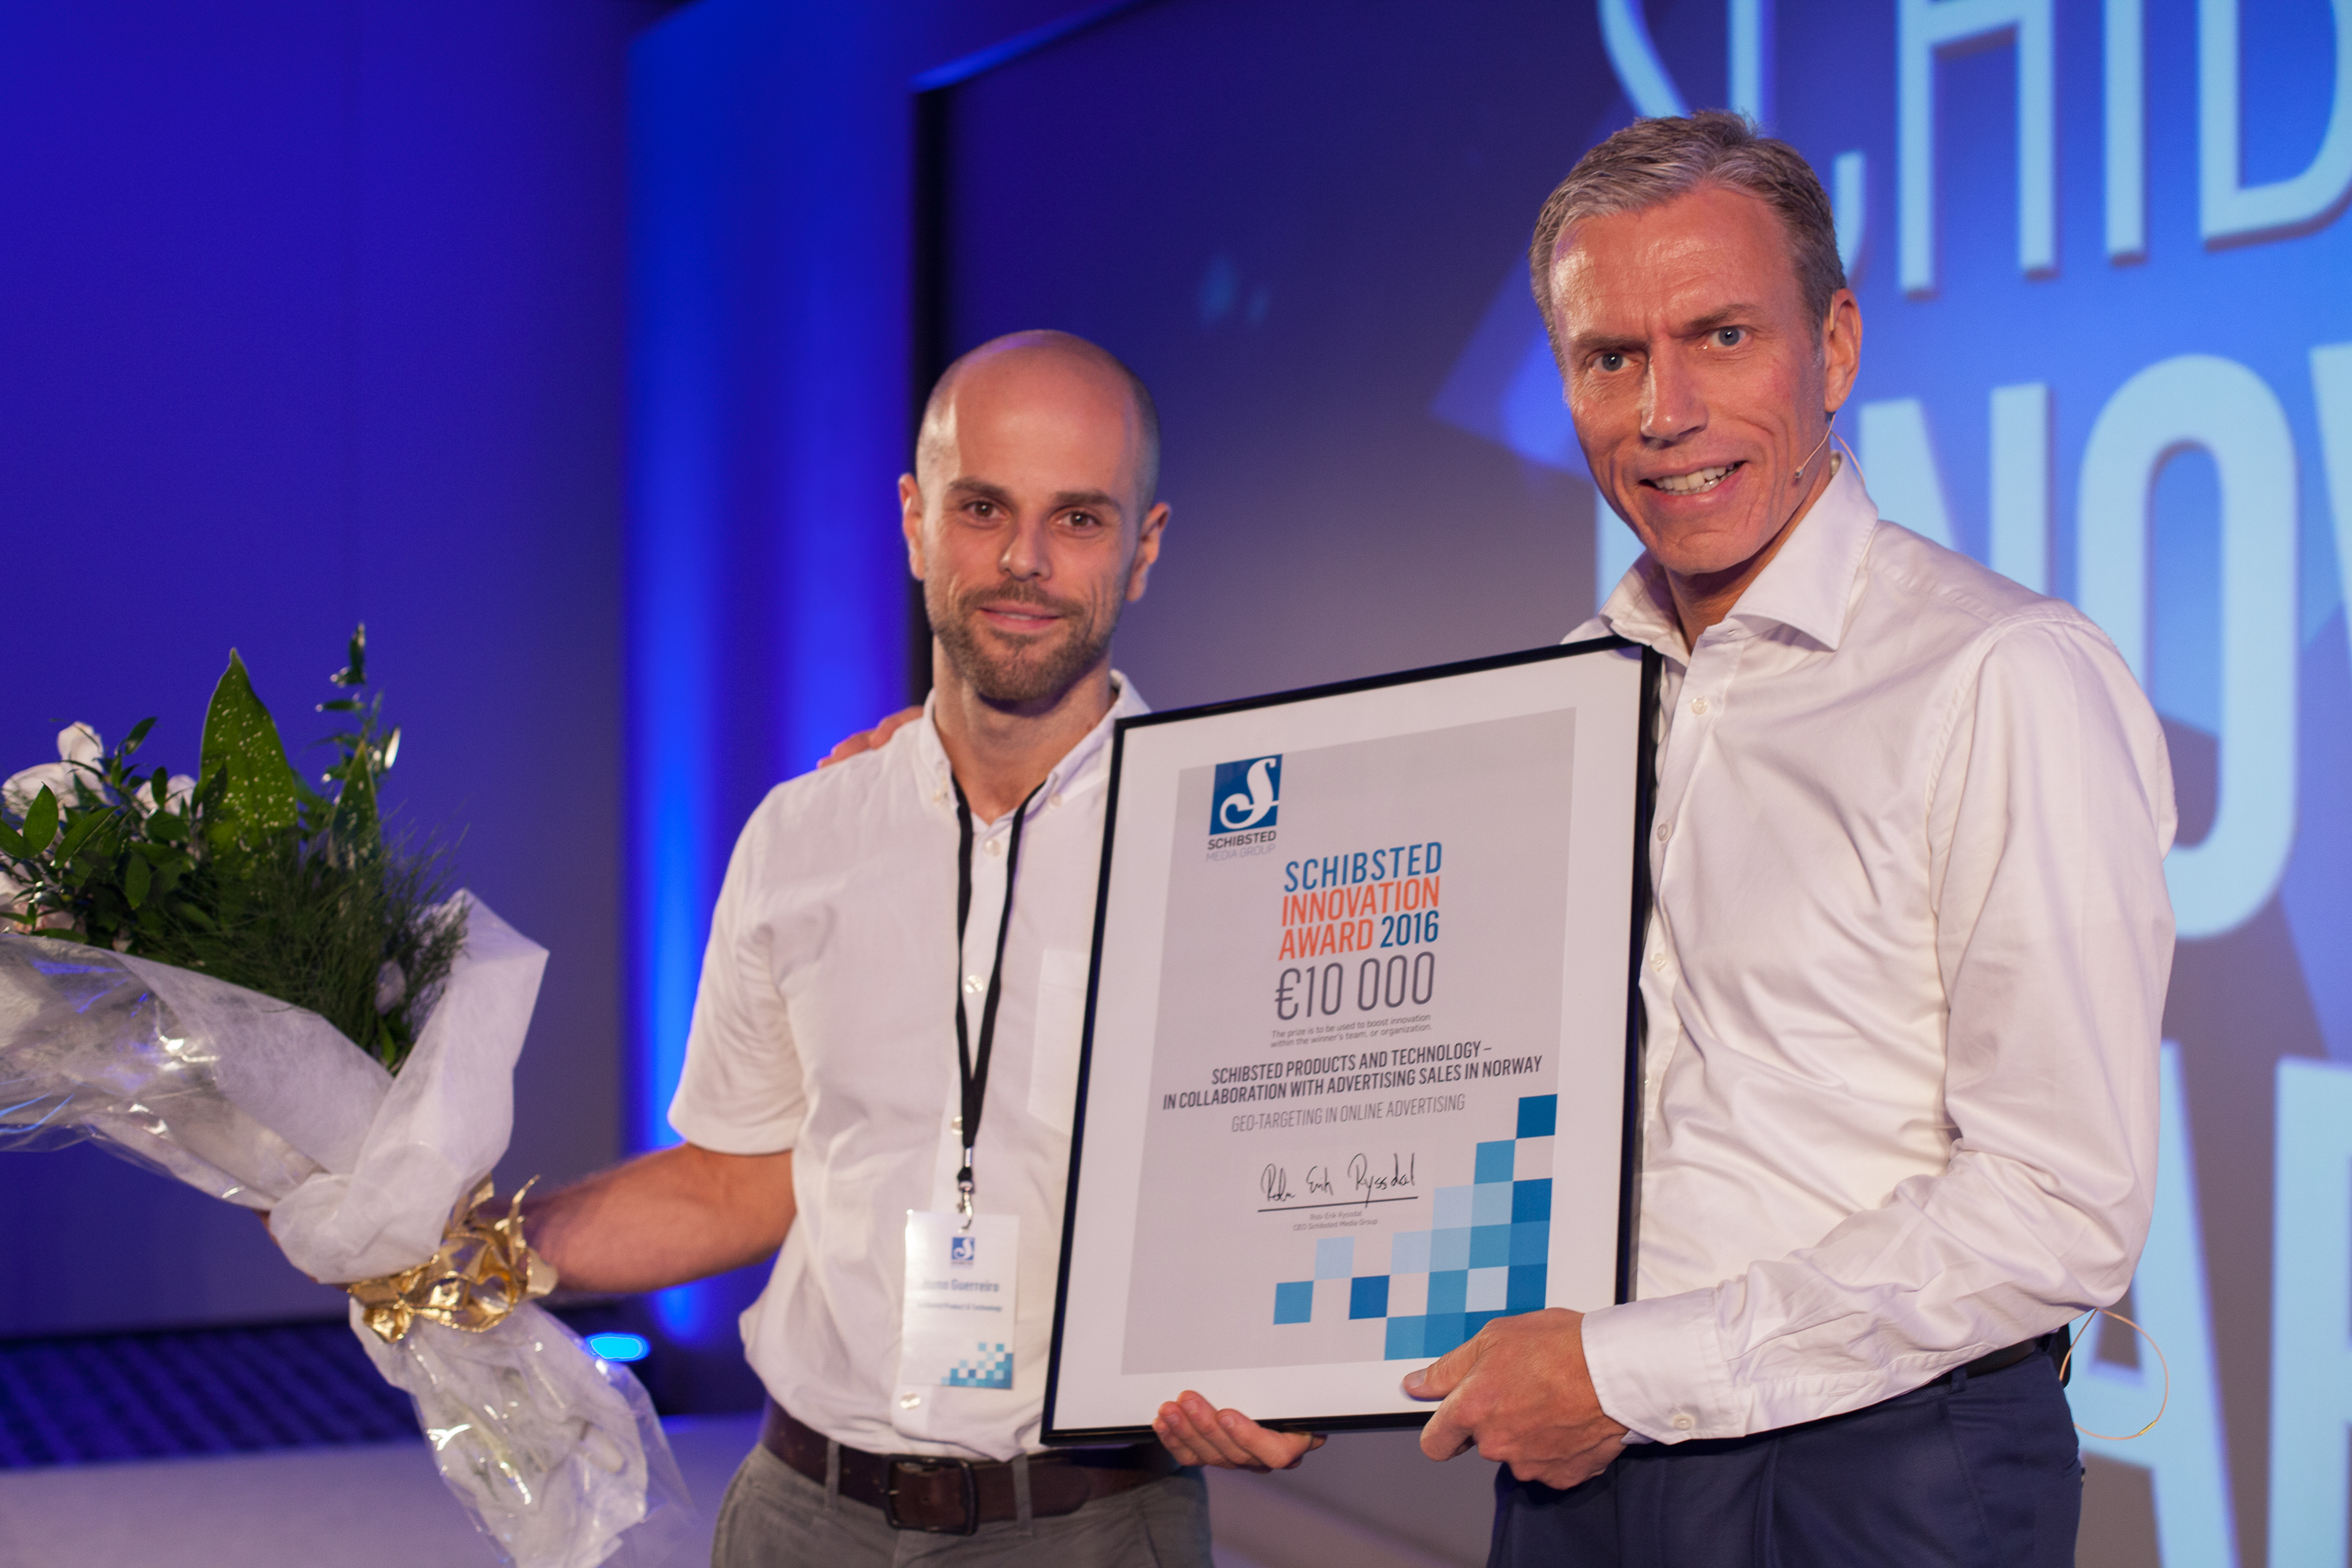 Caption: Nuno Guerreiro (L) of Schibsted Product and Tech accepts the 2016 Schibsted Innovation Award from Rolv Erik Ryssdal (R), CEO of Schibsted Media Group